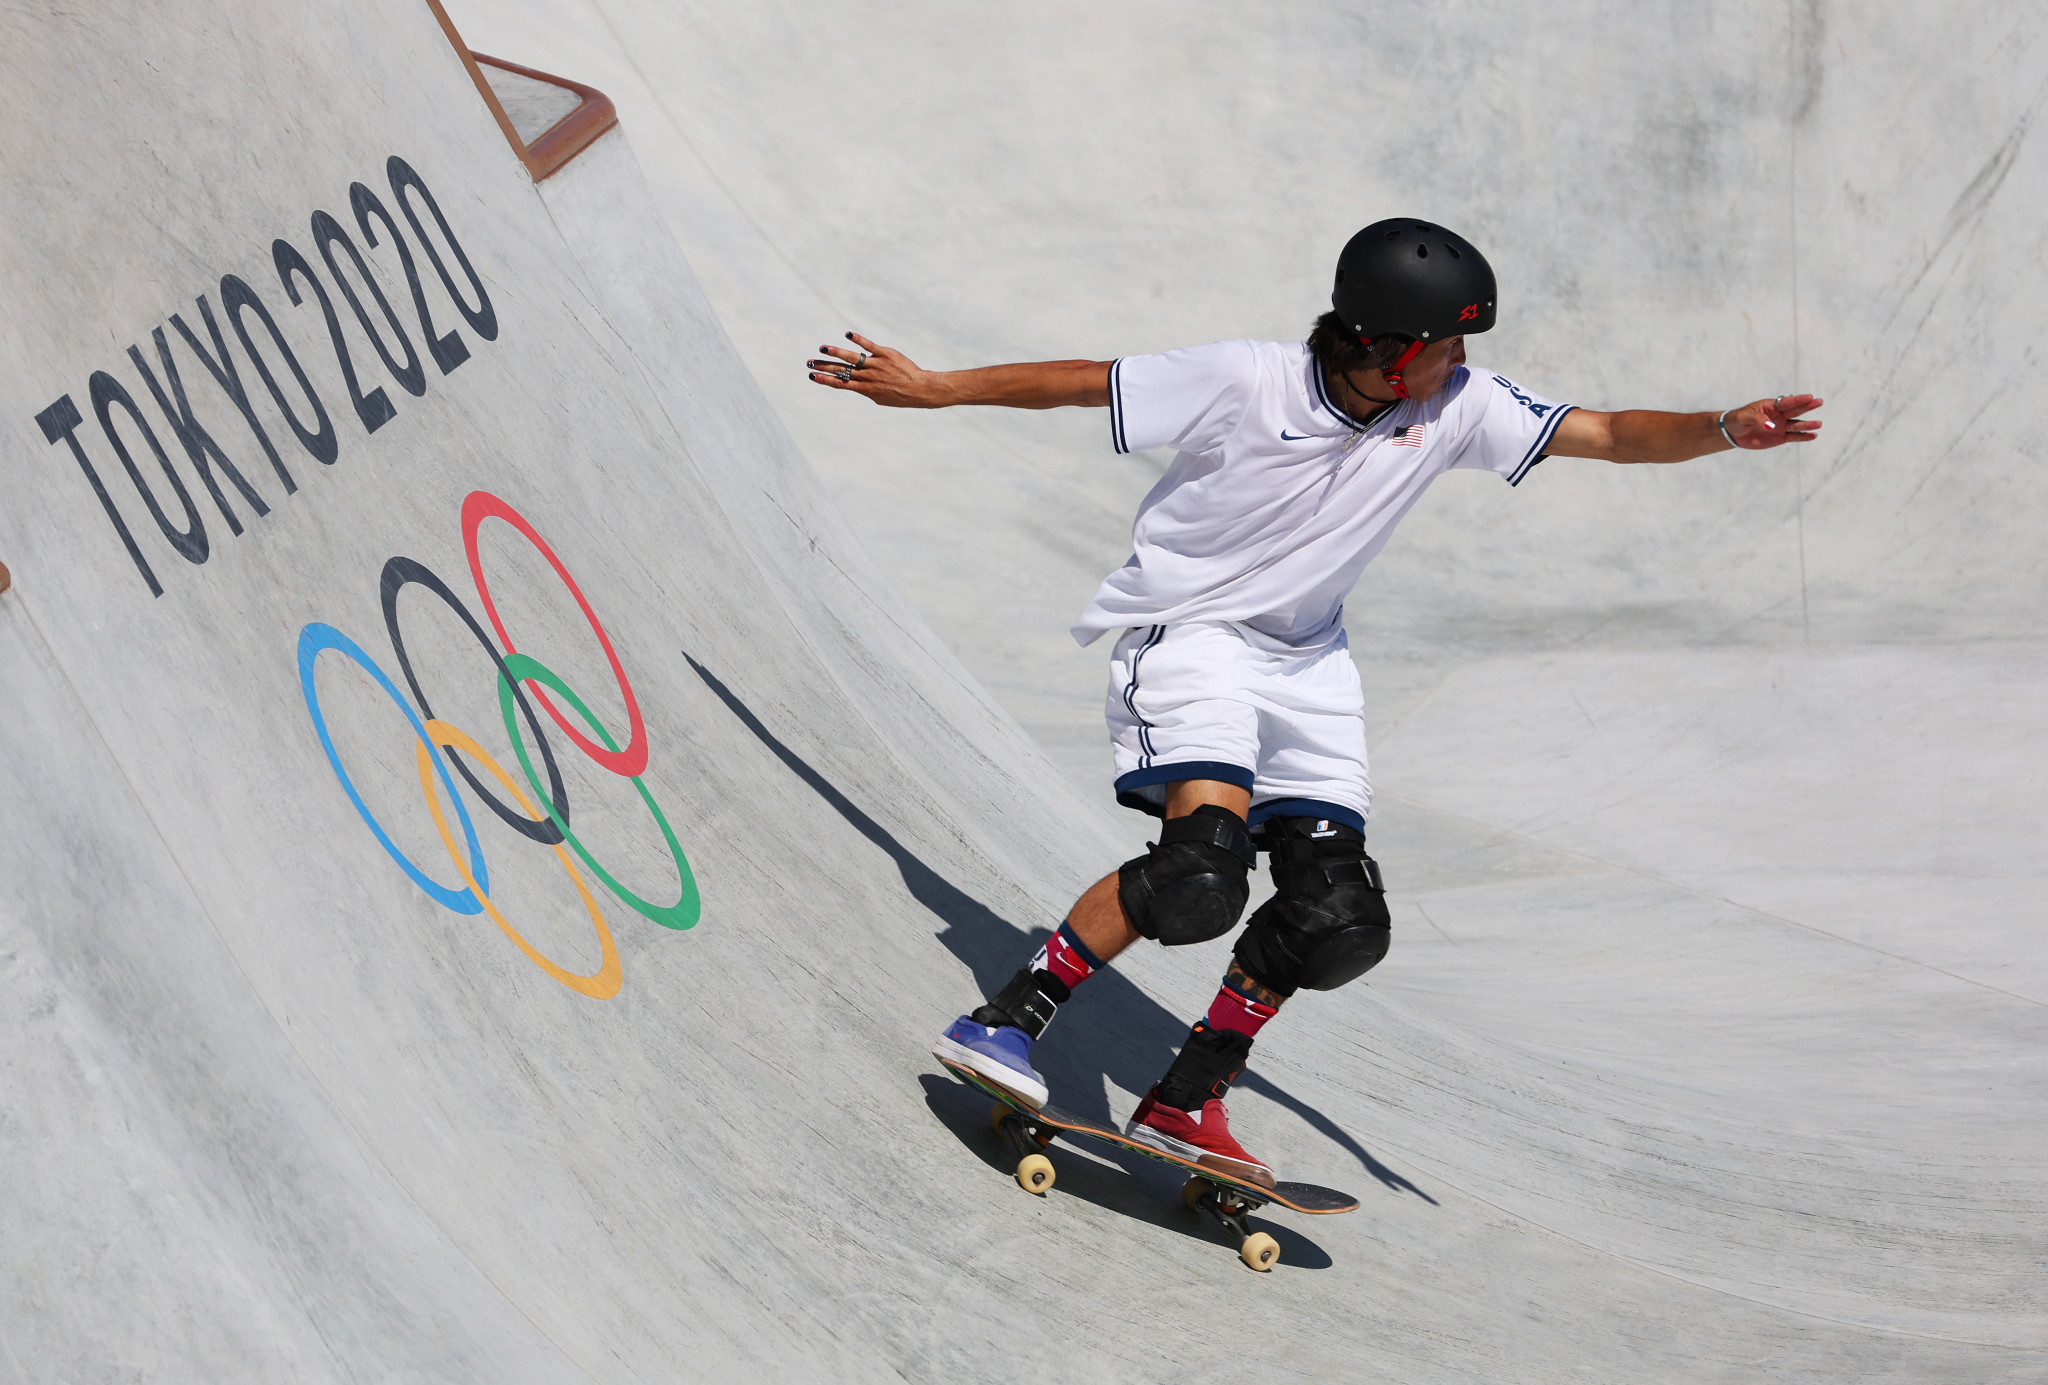 Pre-competition favourite Heimana Reynolds did not qualify for the men's park skateboarding final ©Getty Images